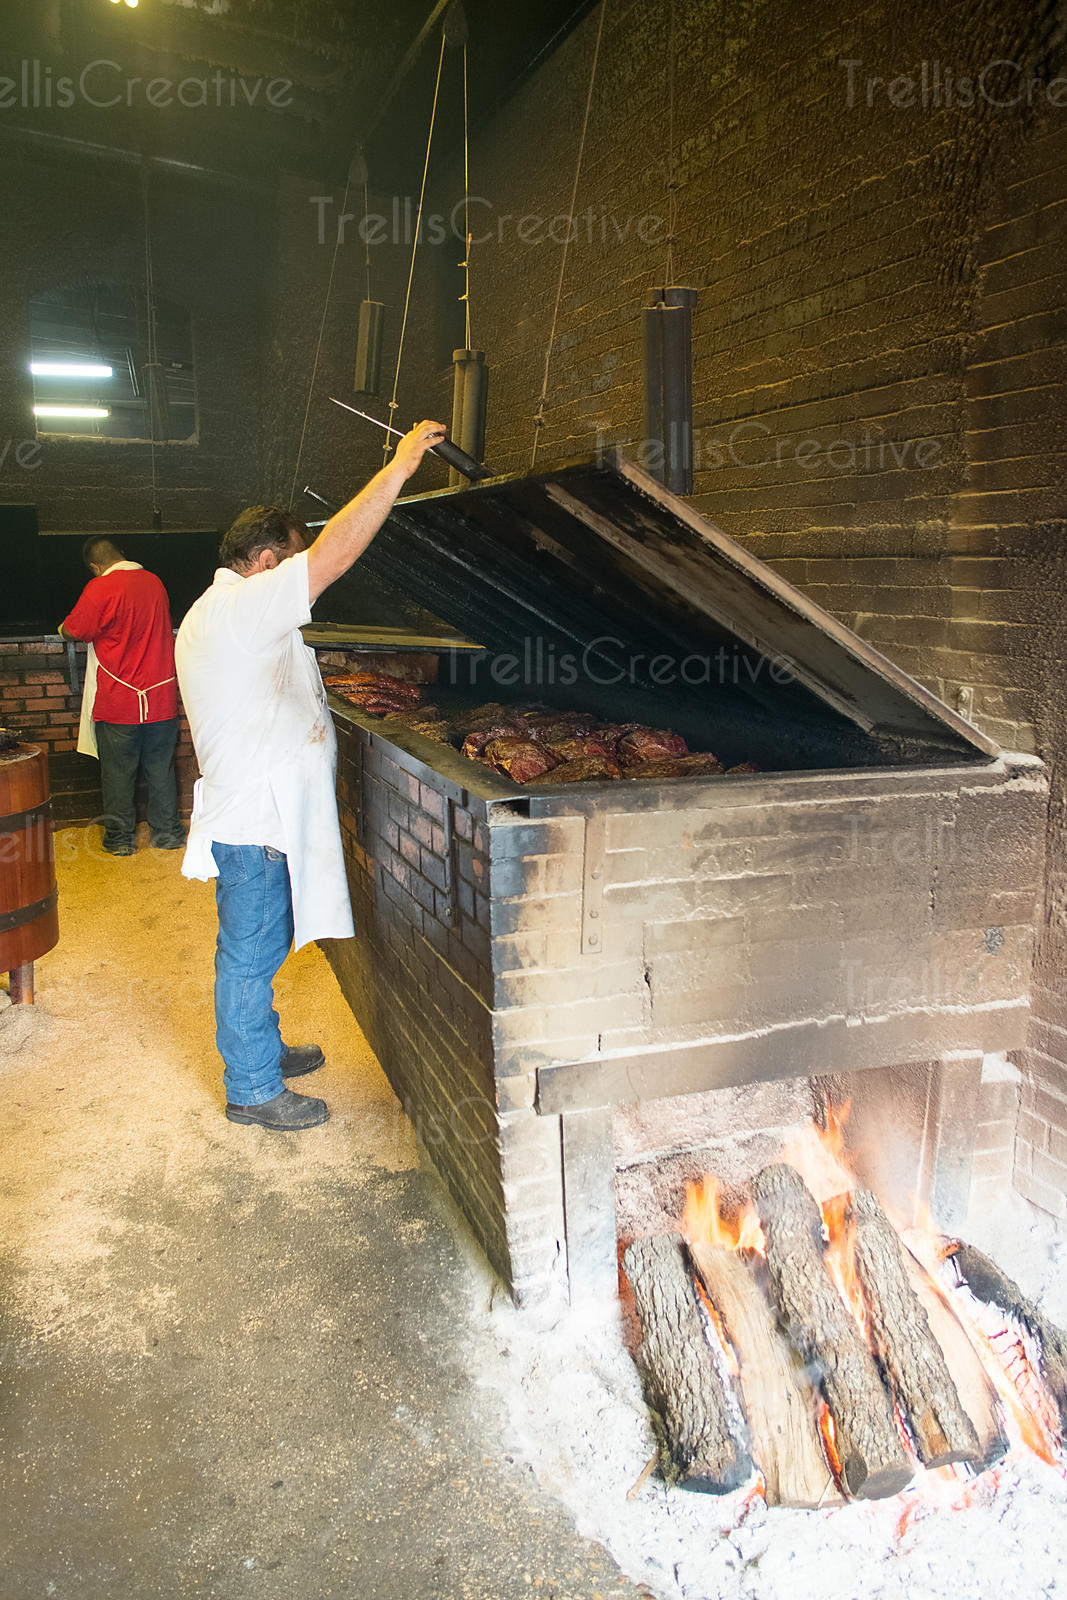 Chef looking at Barbecue grilled meat in restaurant